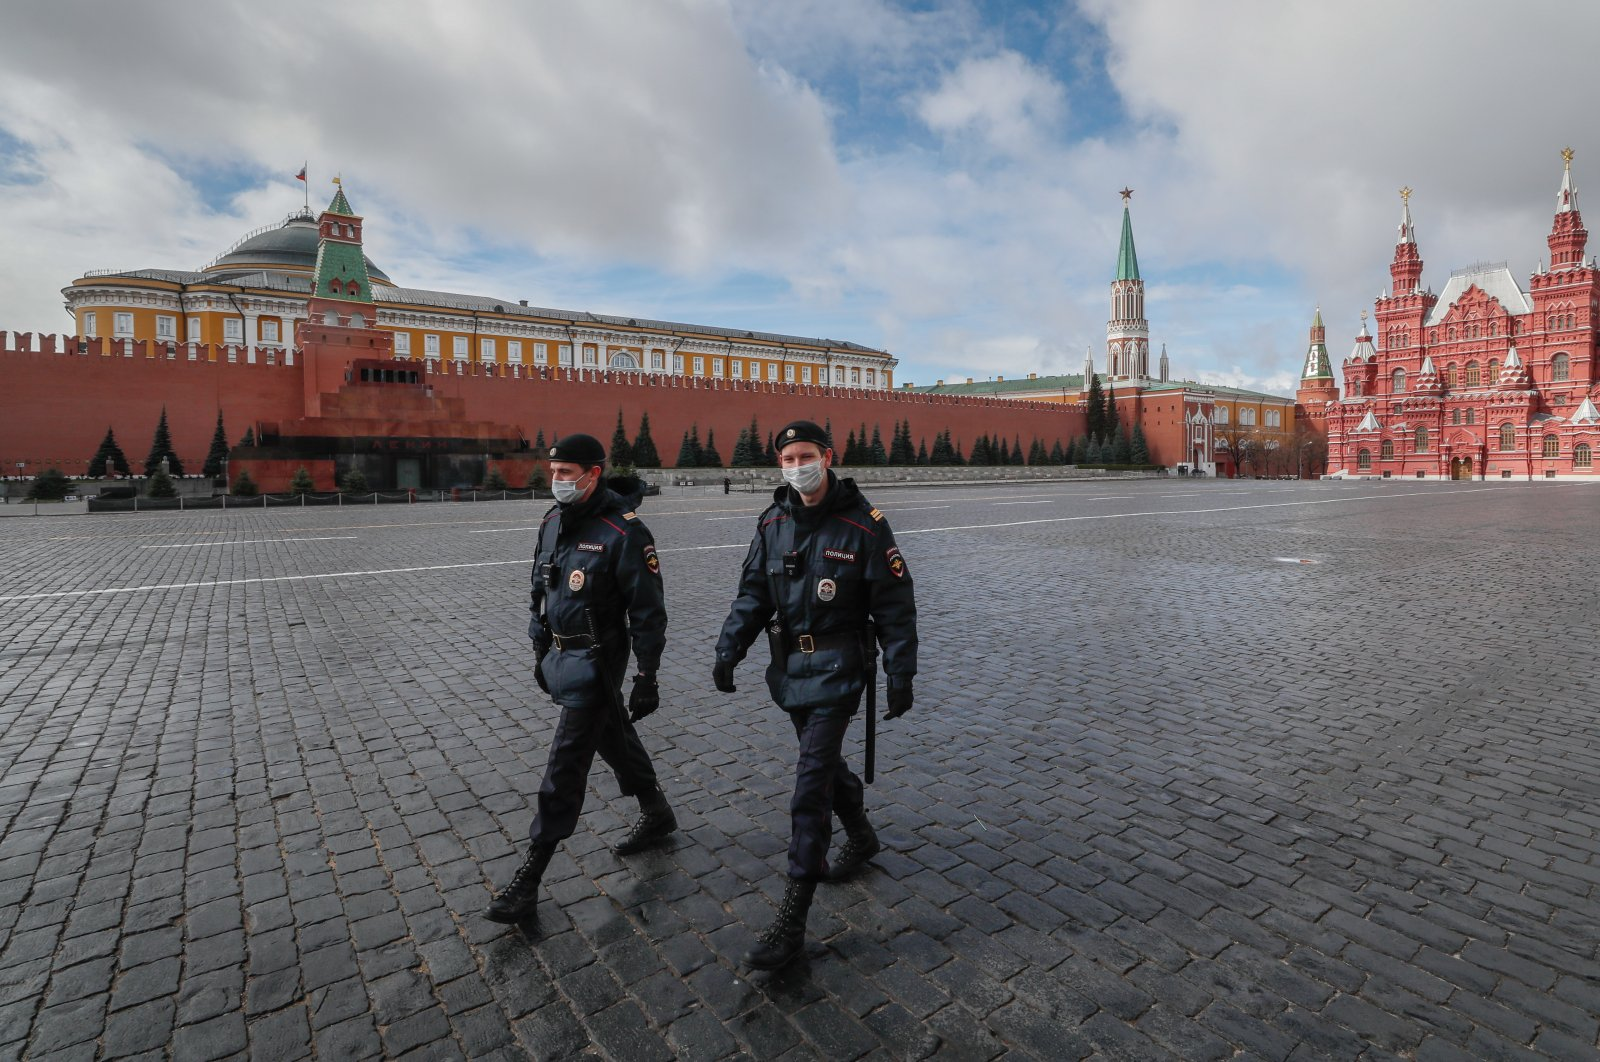 Police officers wearing protective masks walk on the Red Square in front of the Kremlin in Moscow, Russia, 17 April 2020. (EPA-EFE/YURI KOCHETKOV Photo)